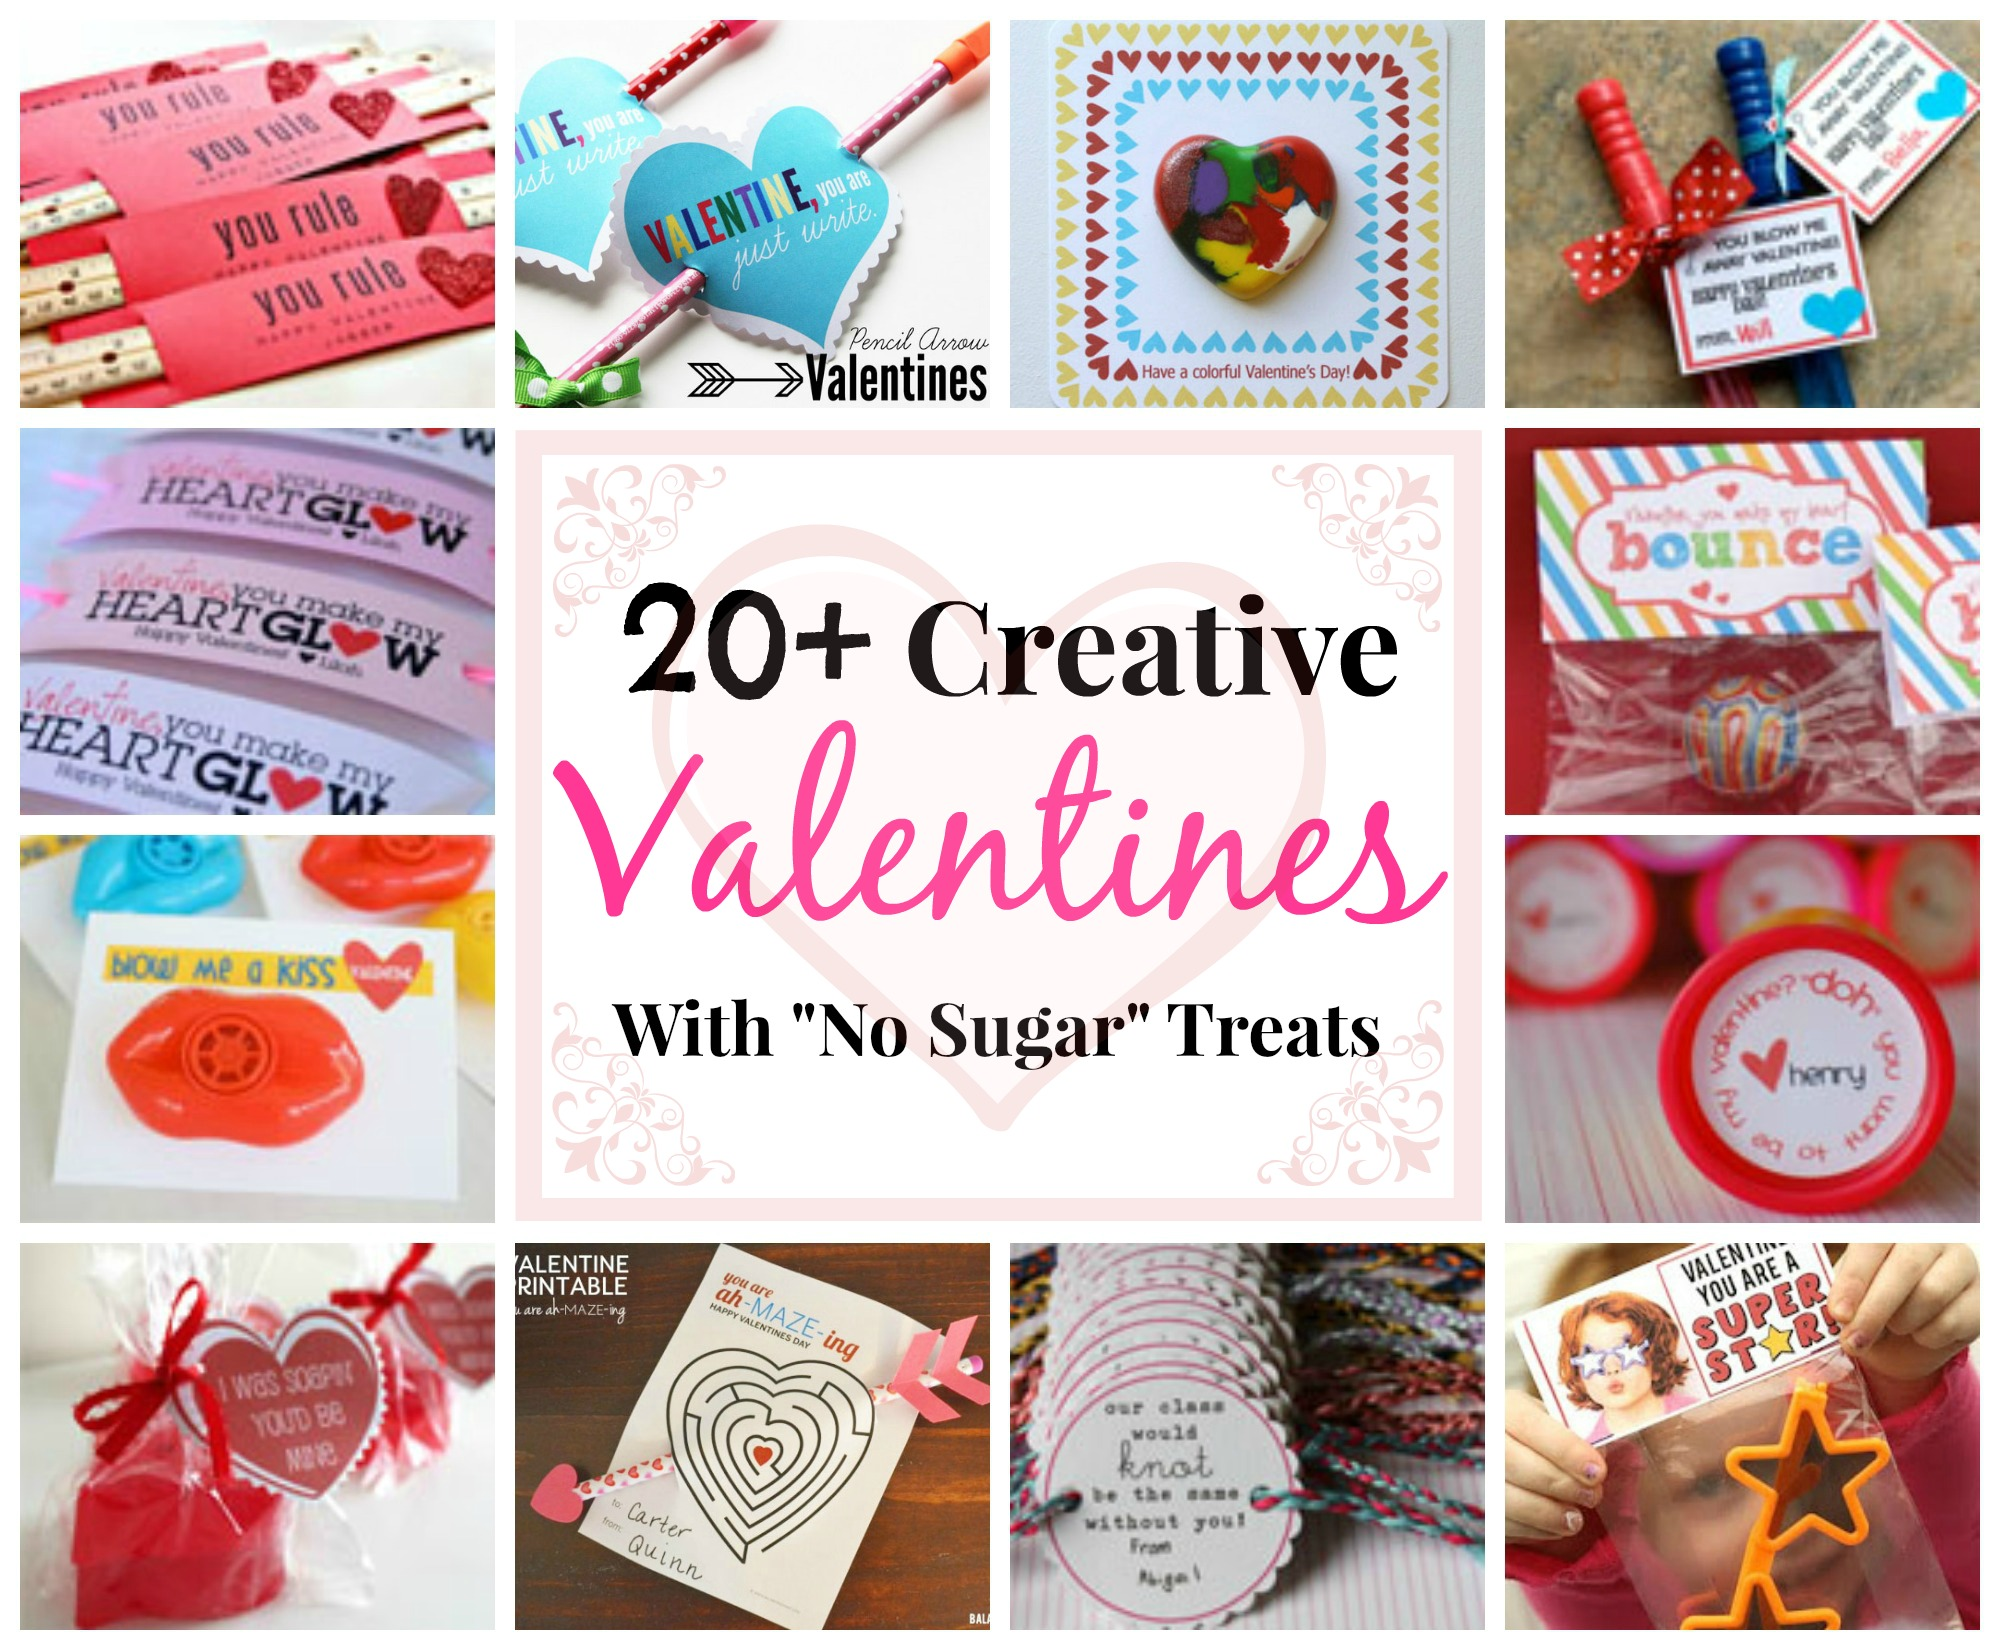 Valentines with Edible Treats – Candy Valentine Card